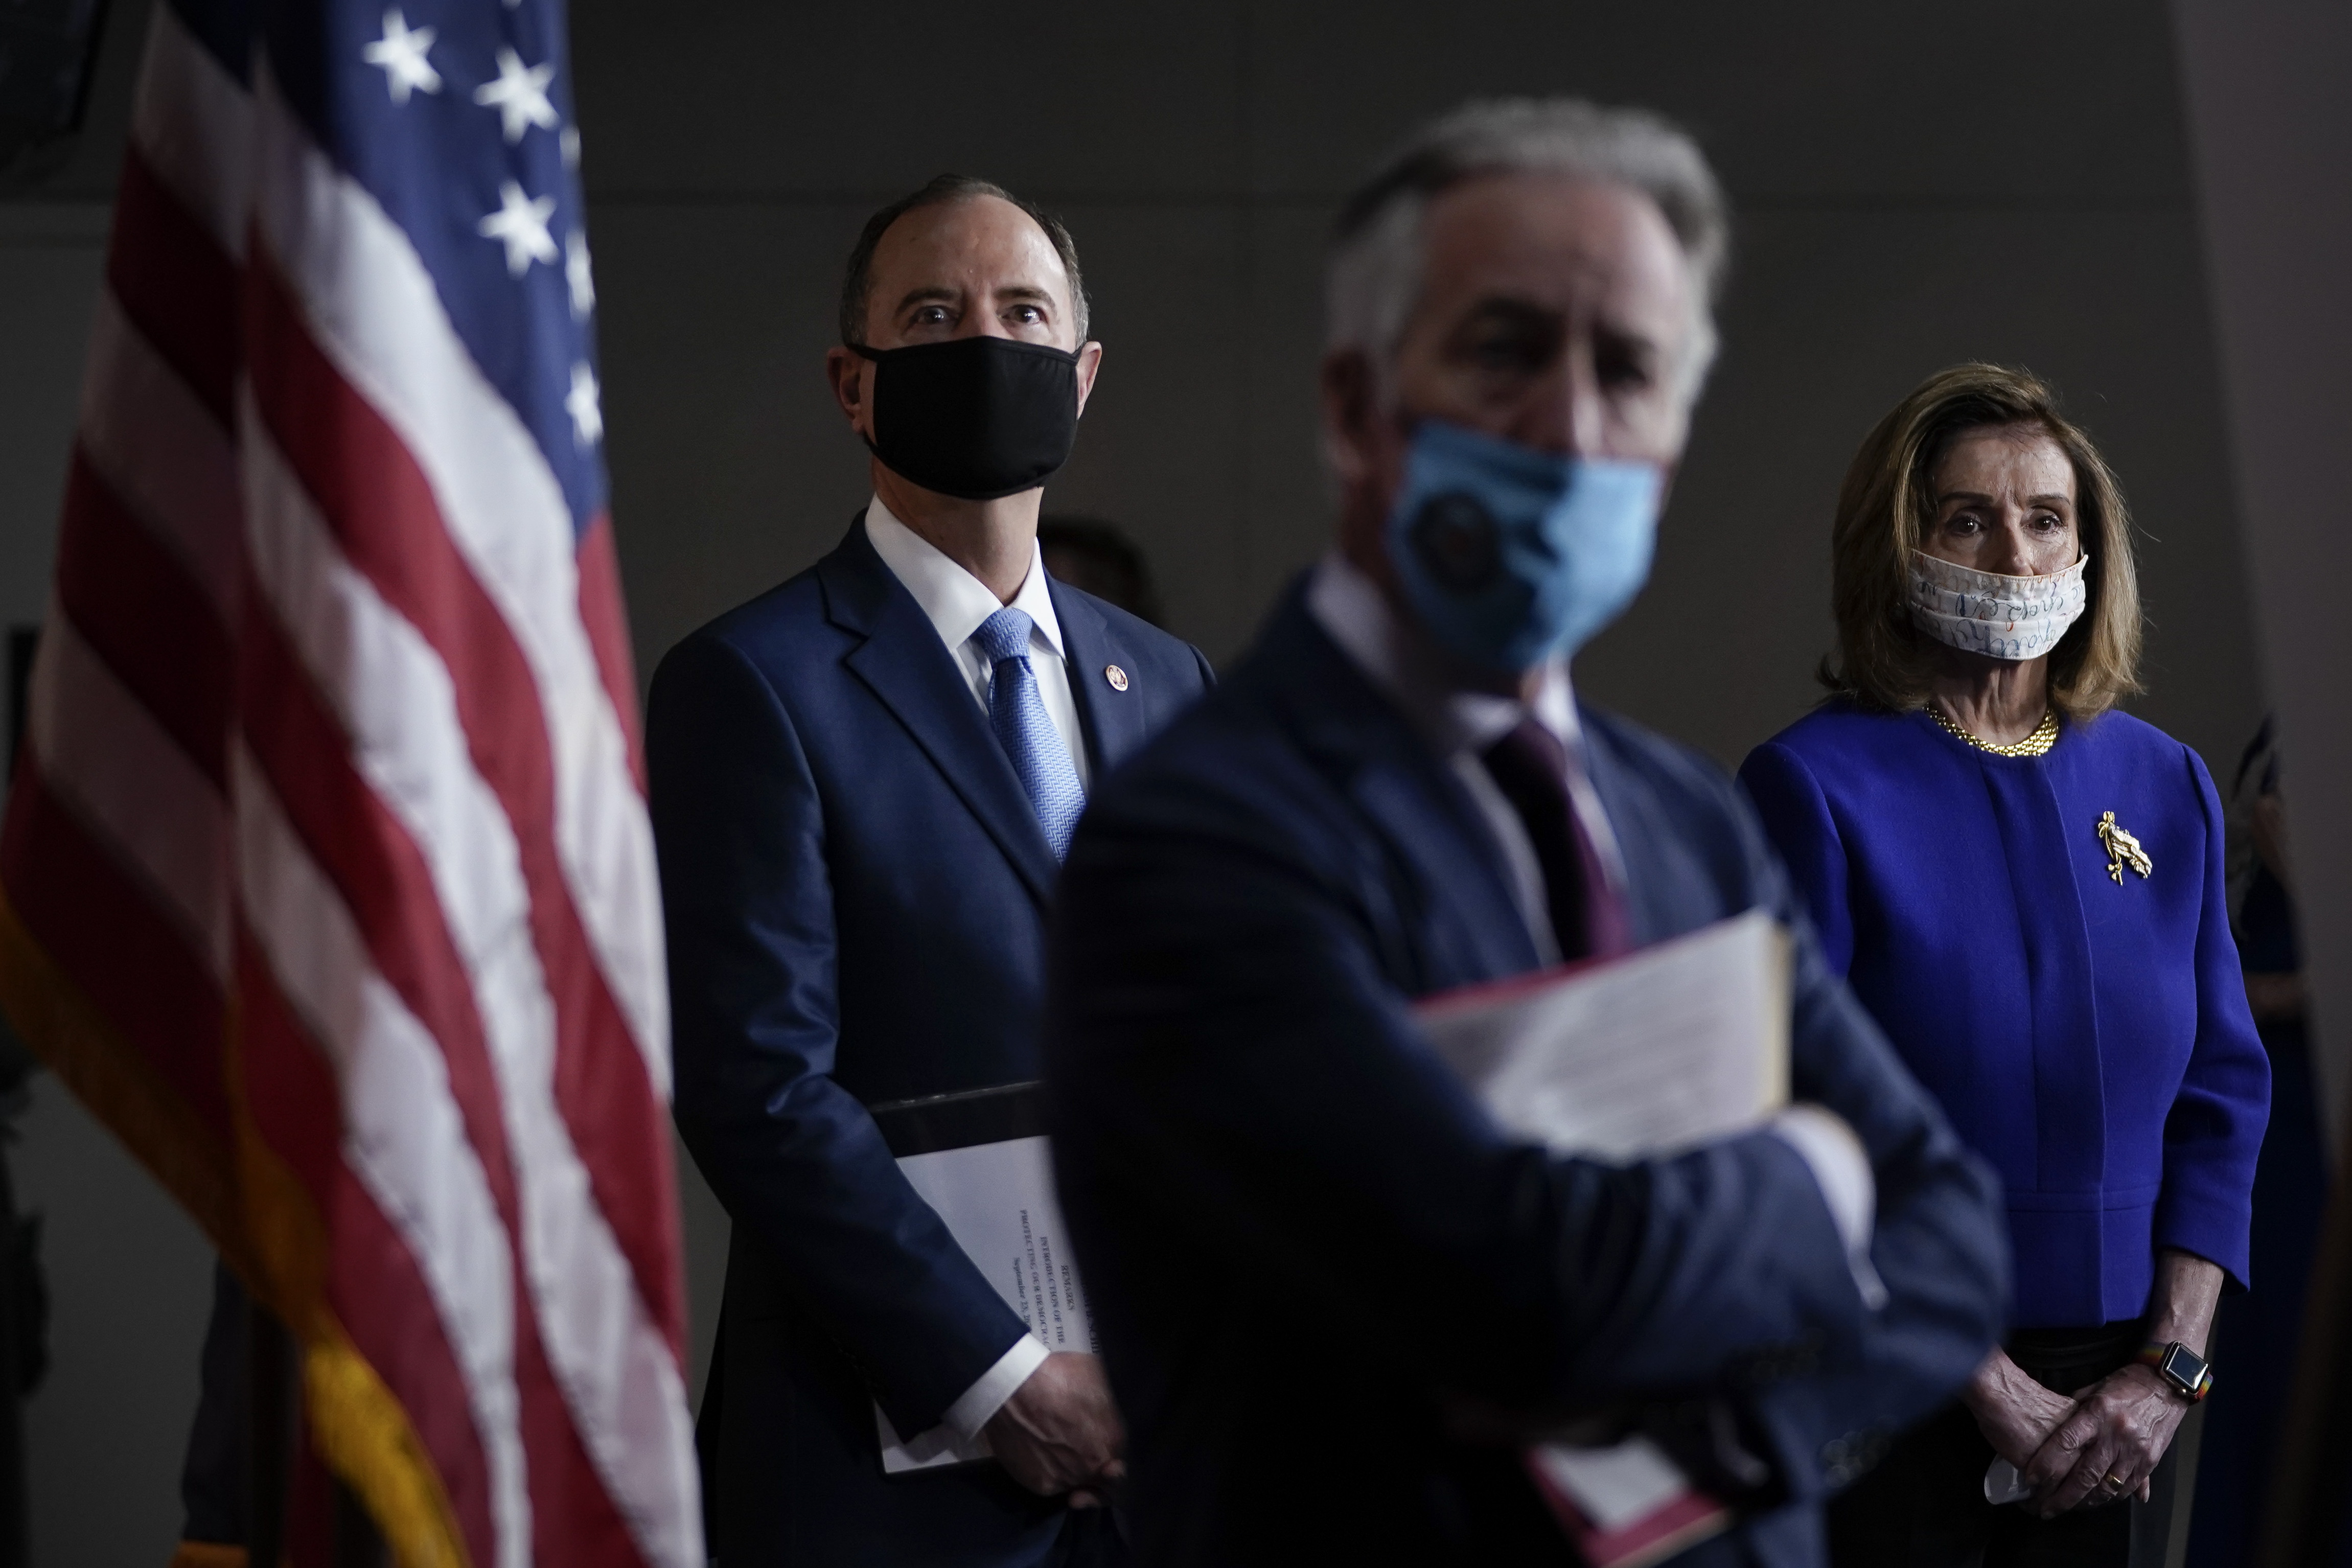 WASHINGTON, DC - SEPTEMBER 23: (L-R) Rep. Adam Schiff (D-CA), Rep. Richard Neal (D-MA) and Speaker of the House Nancy Pelosi (D-CA) attend a news conference at the U.S. Capitol on September 23, 2020 in Washington, DC. Pelosi and fellow House Democrats introduced a package of sweeping reforms aimed at curbing presidential abuse of power. (Photo by Drew Angerer/Getty Images)